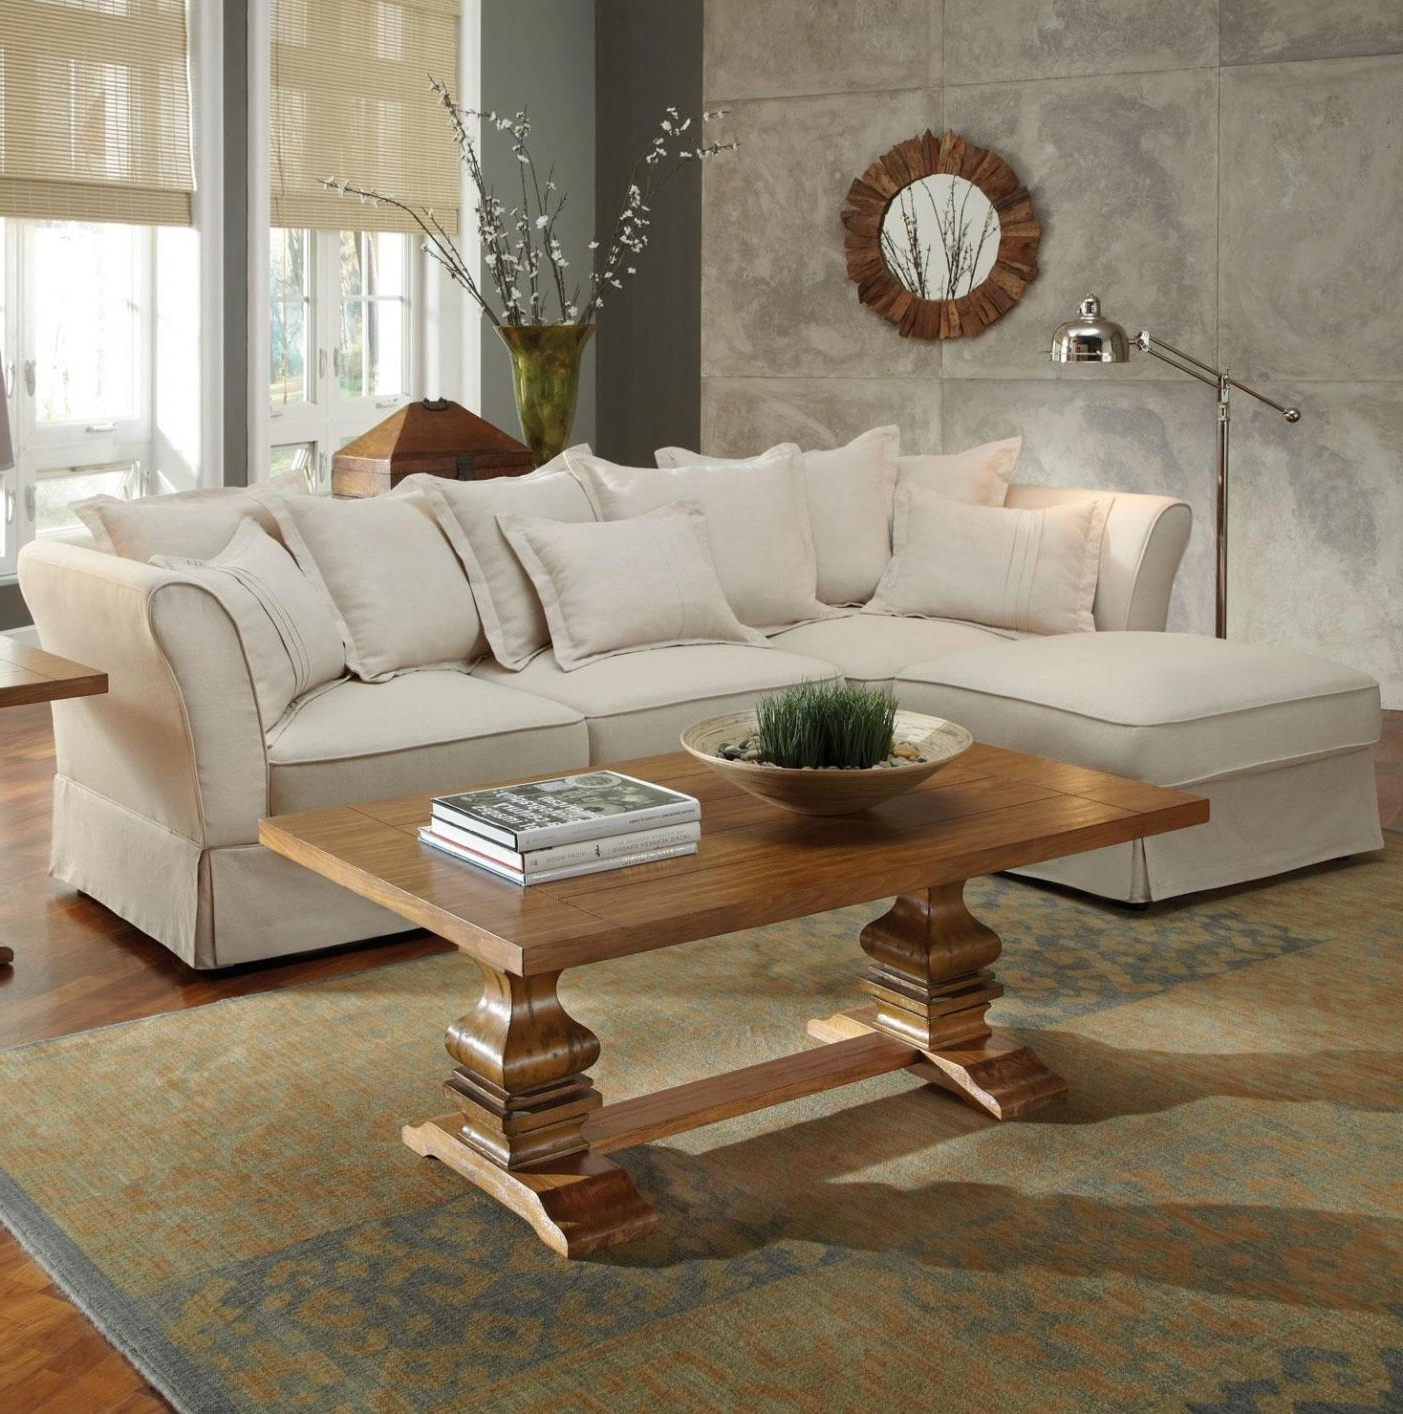 Trendy Beige Fabric Sectional Sofa – Steal A Sofa Furniture Outlet Los Within Beige Sectionals With Chaise (View 15 of 15)